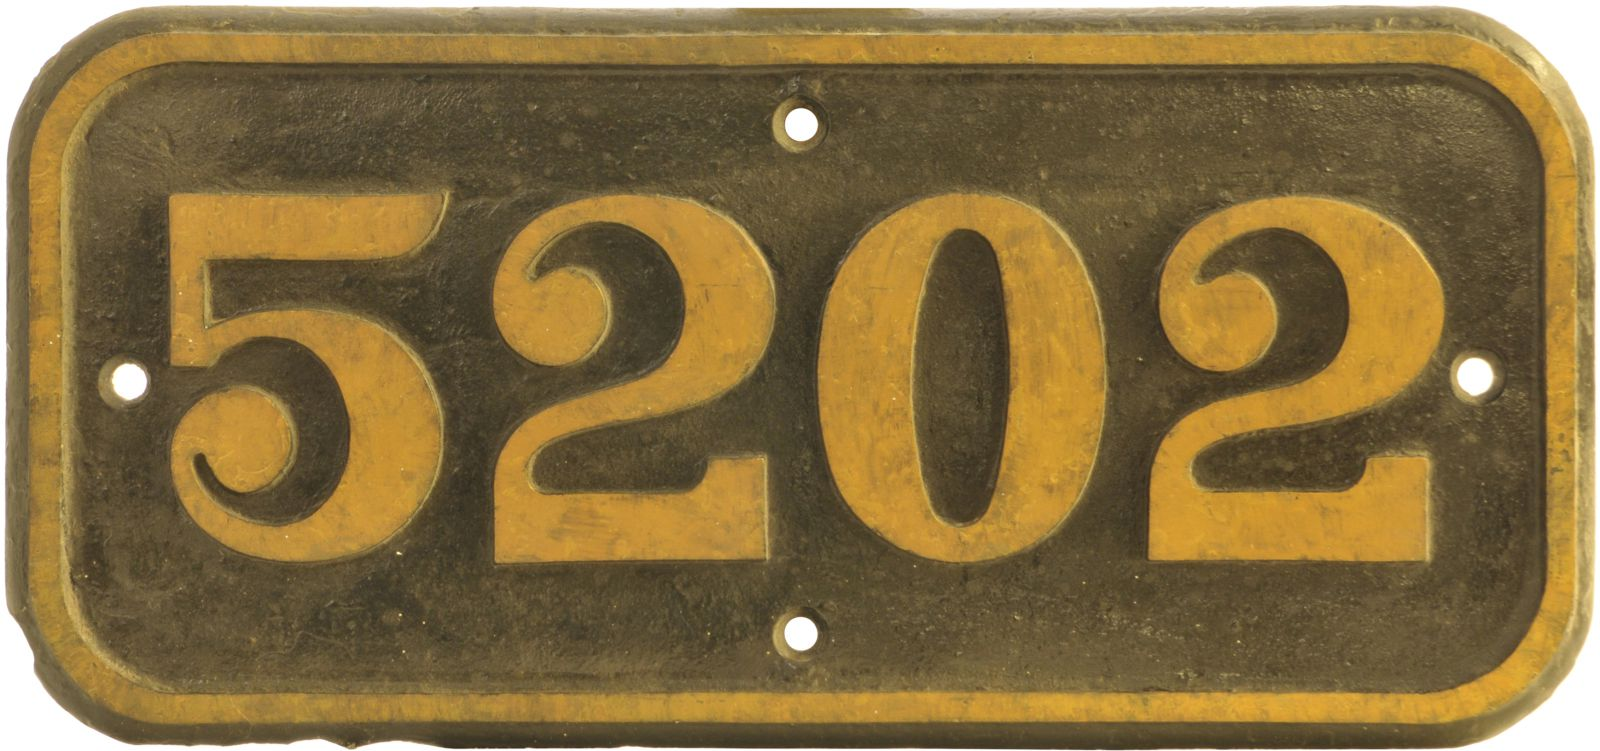 Lot 40 - Railway Locomotive Cabside Numberplates, 5202: A GWR cabside numberplate, 5202, from a 4200 Class